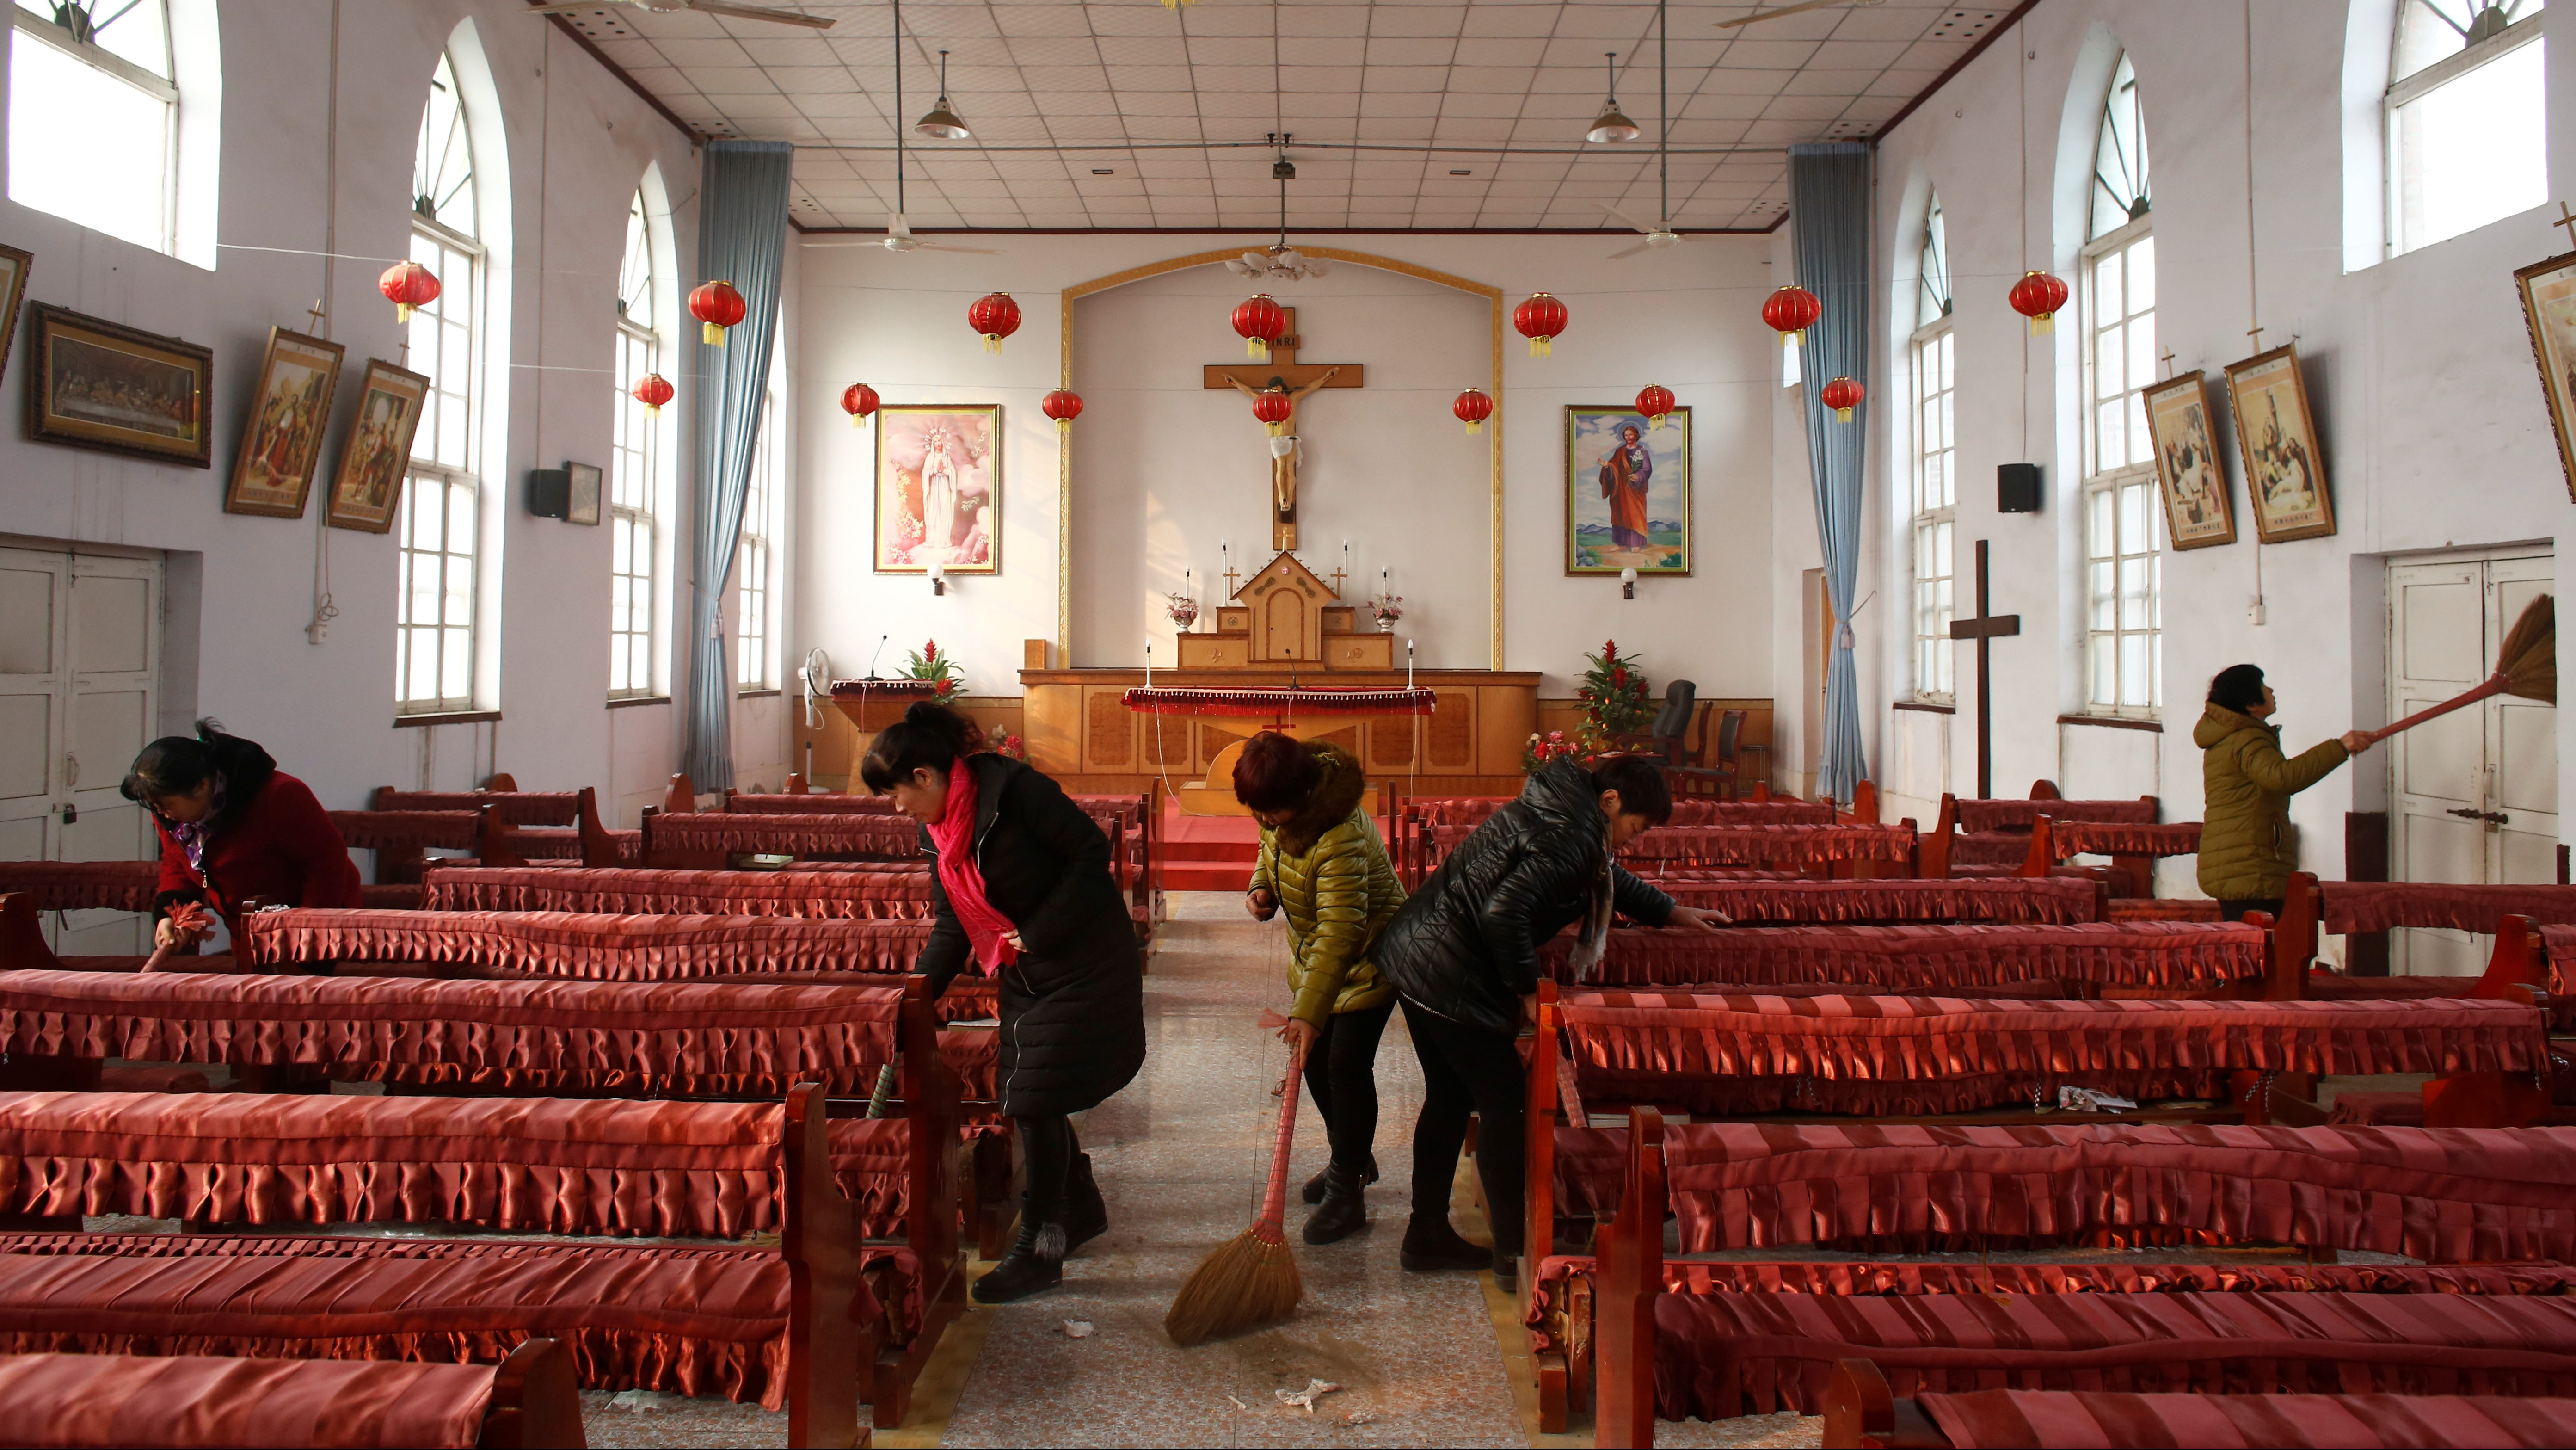 Members of the congregation clean the unofficial Catholic church after Sunday service in Majhuang village, Hebei Province, China, December 11, 2016. Picture taken December 11, 2016.